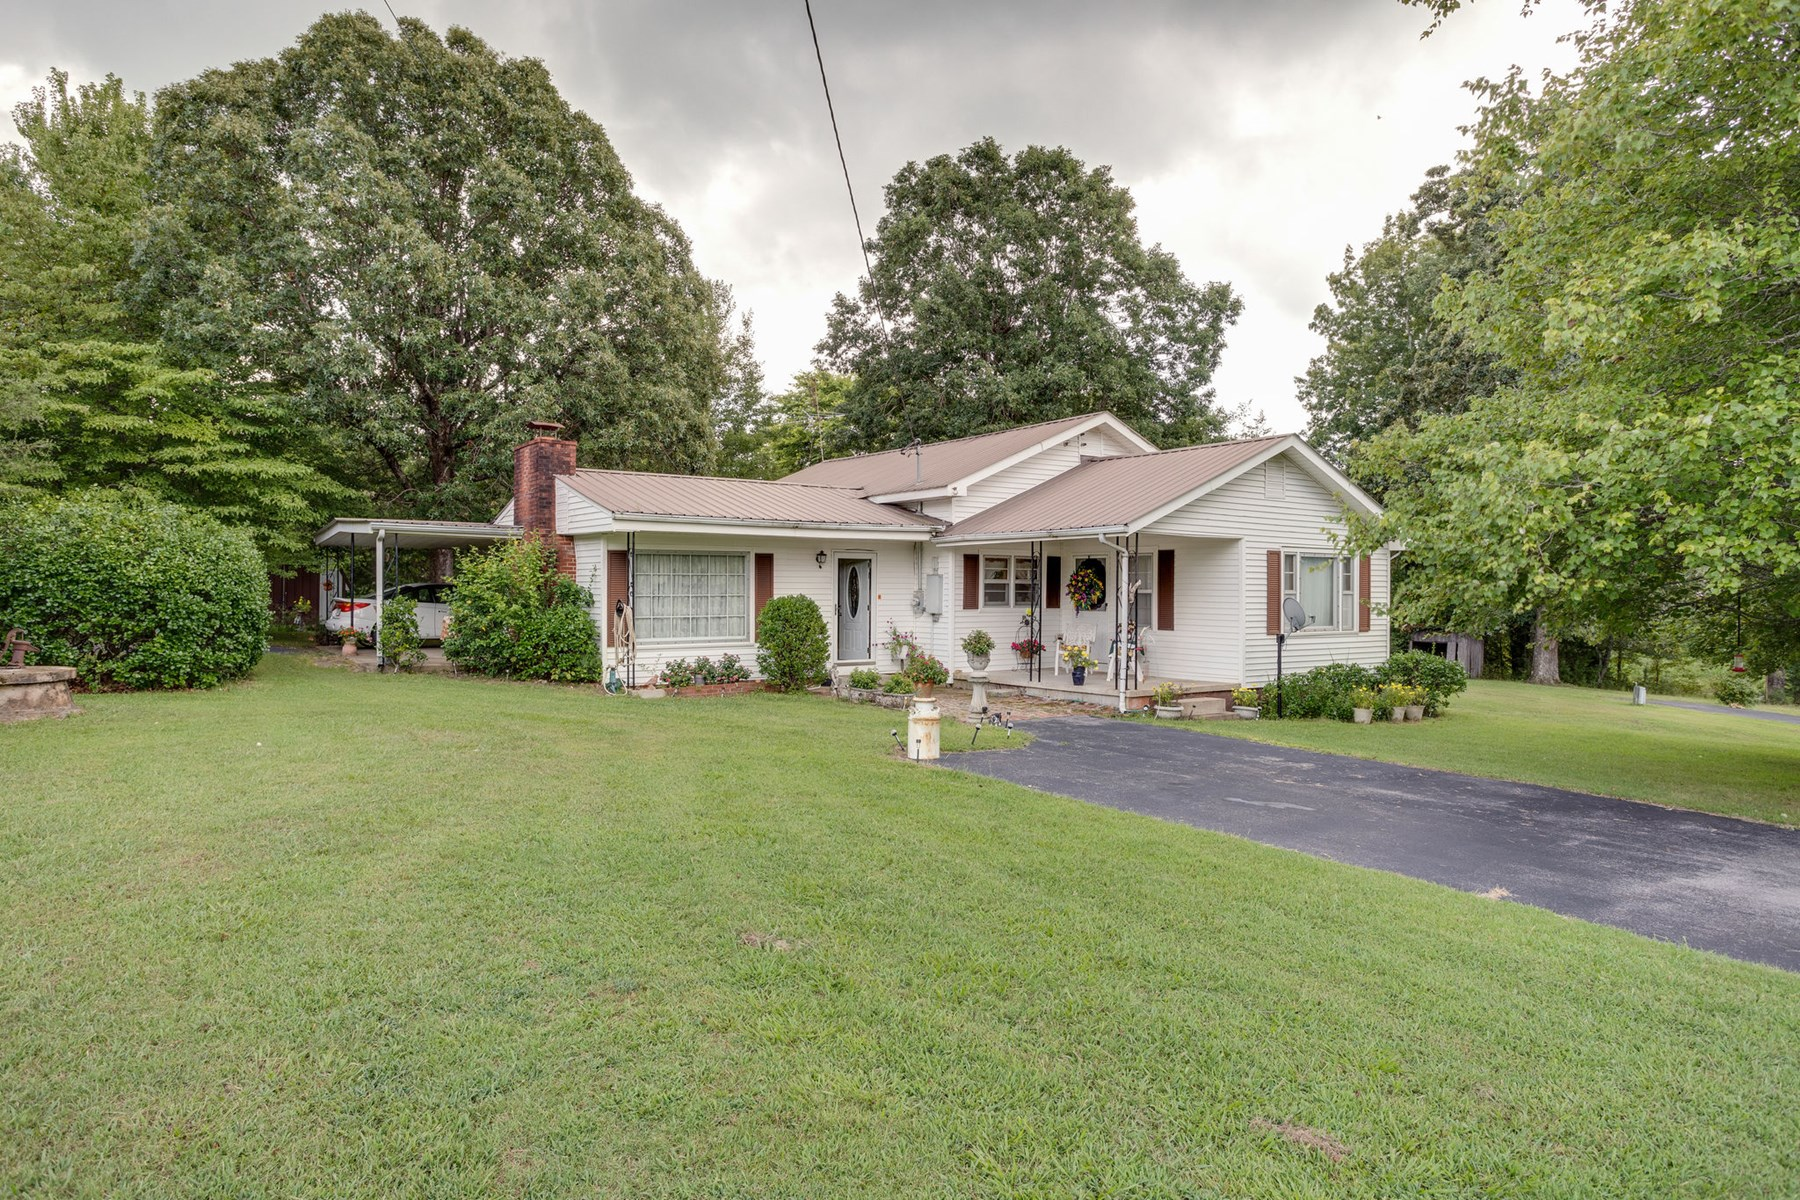 4 Bedroom, Country Home with Acreage in Hohenwald, Tennessee